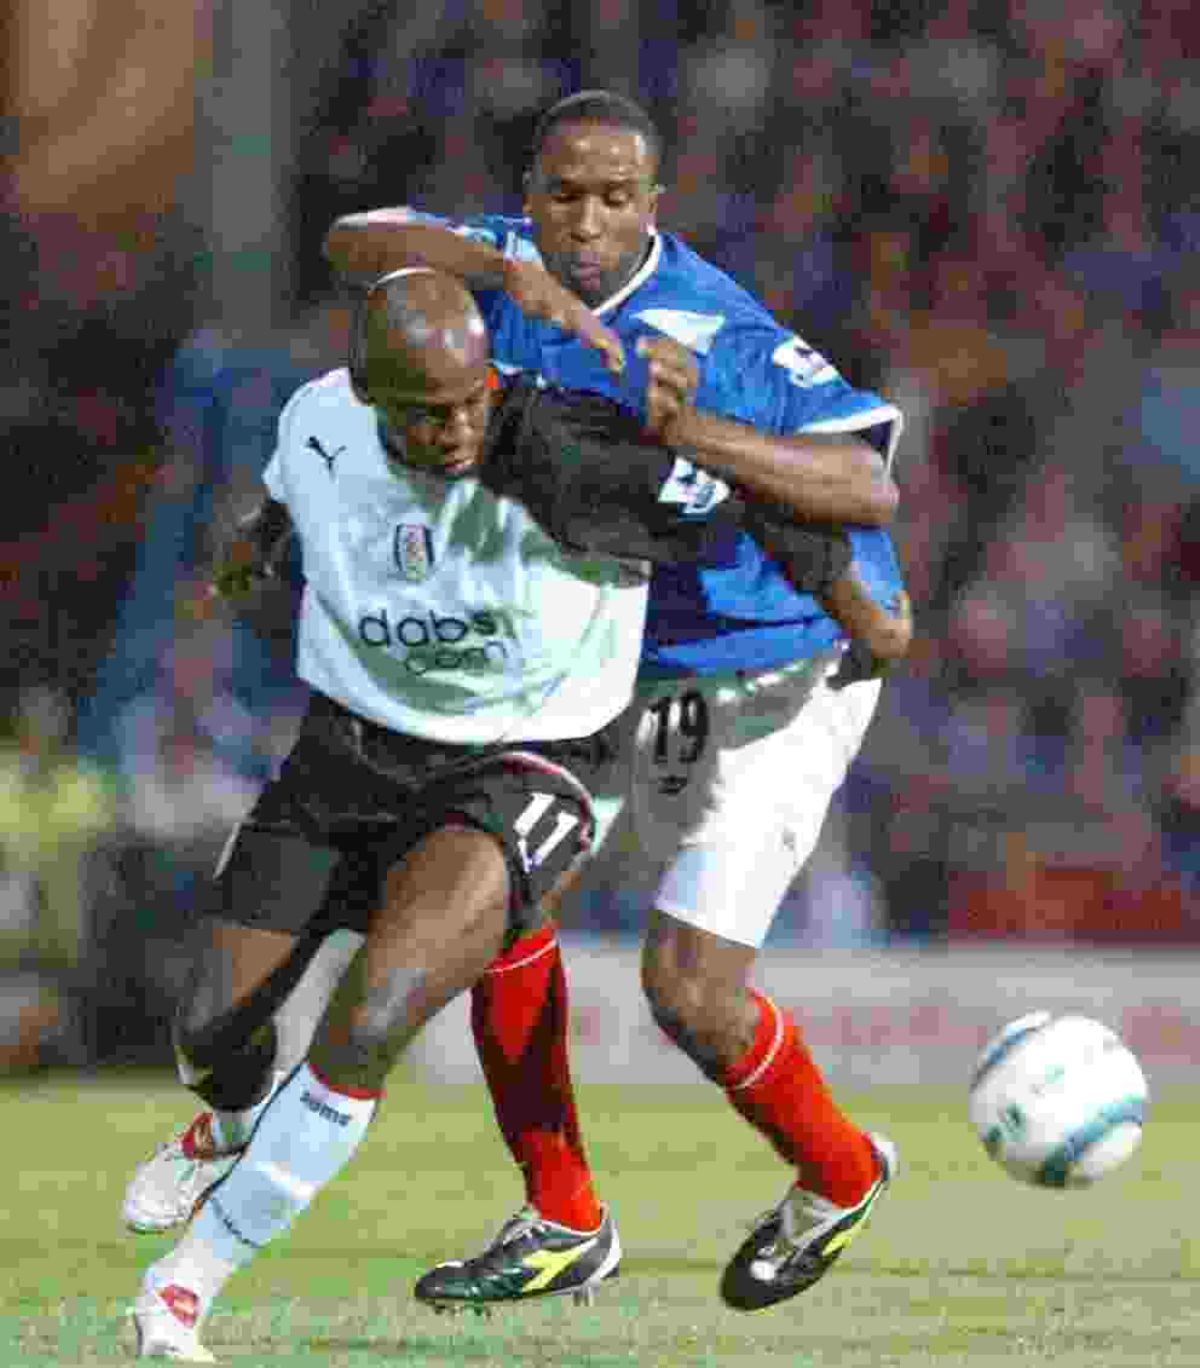 Luis Boa Morte in action for Fulham